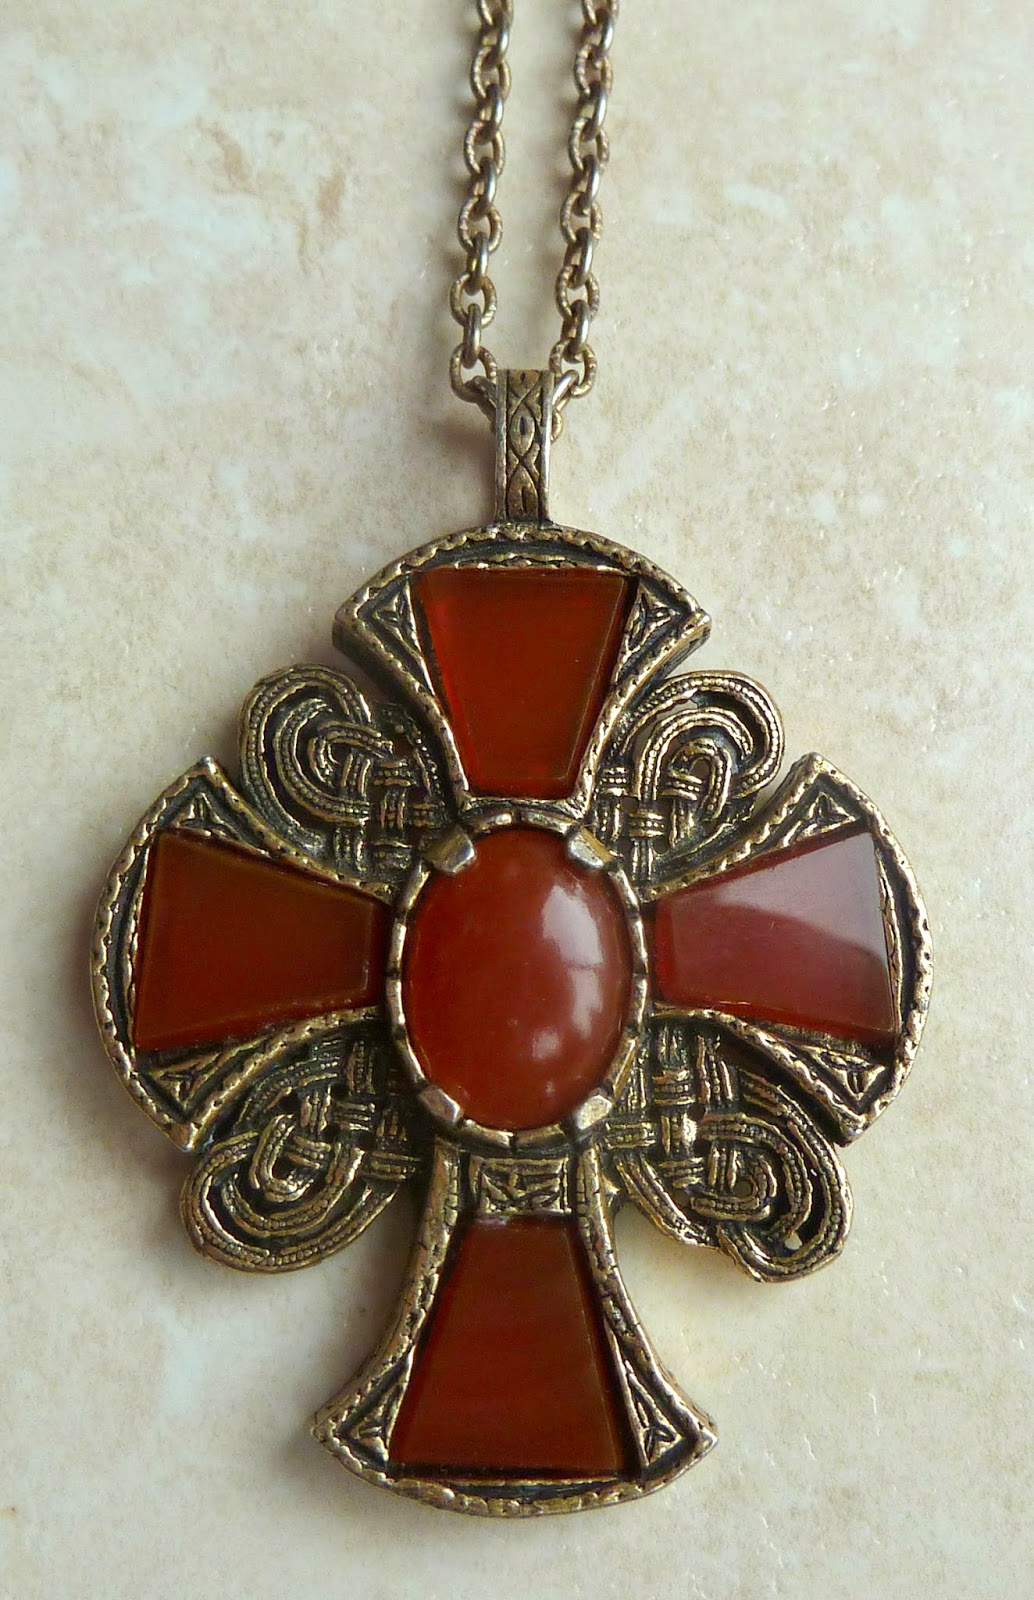 http://www.kcavintagegems.uk/vintage-st-margarets-cross-necklace-by-miracle-138-p.asp